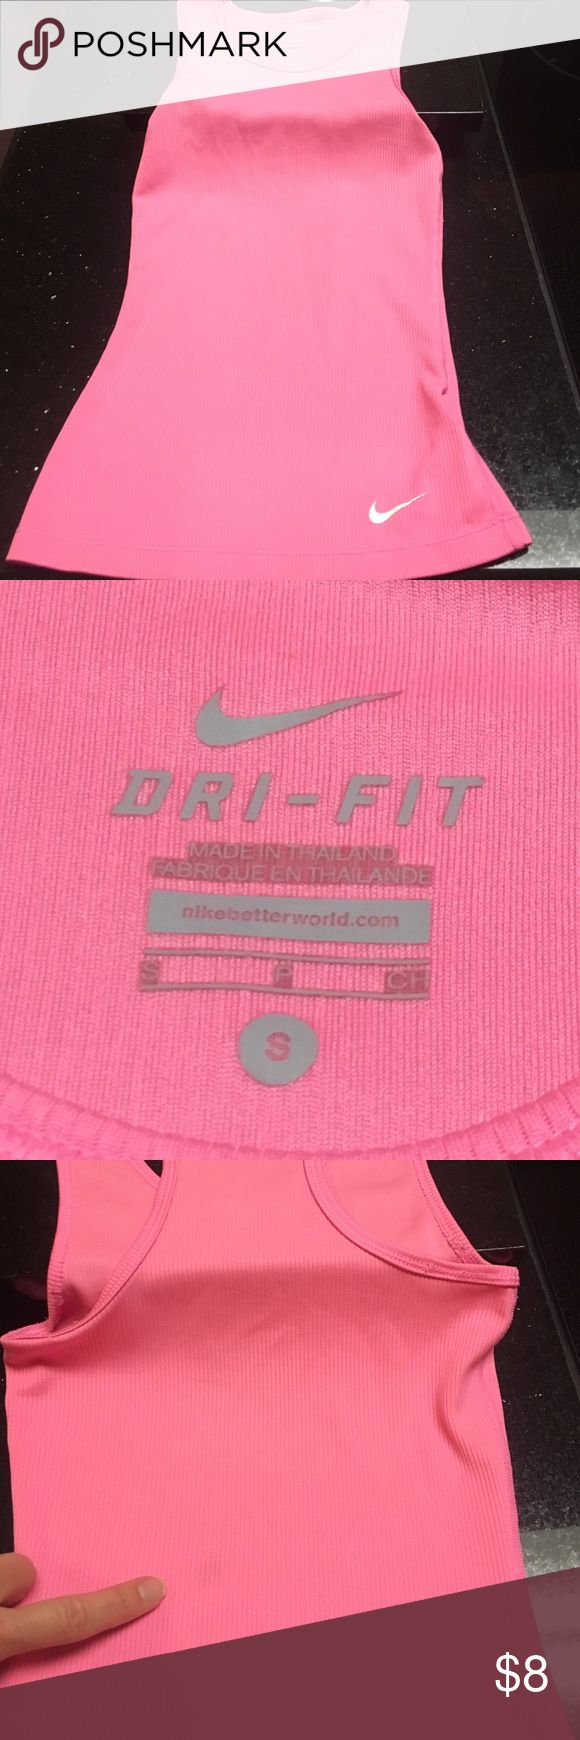 Bubble Gum Pink Nike Girls Dri-Fit Tank Size Small Girls Pink Racerback tank top, small dark spot on the back, may come out in wash? (Looks like something may have faded on it.) but still a great work-out top for Tennis/cheer/dance/workouts for young girl! Nike Shirts & Tops Tank Tops